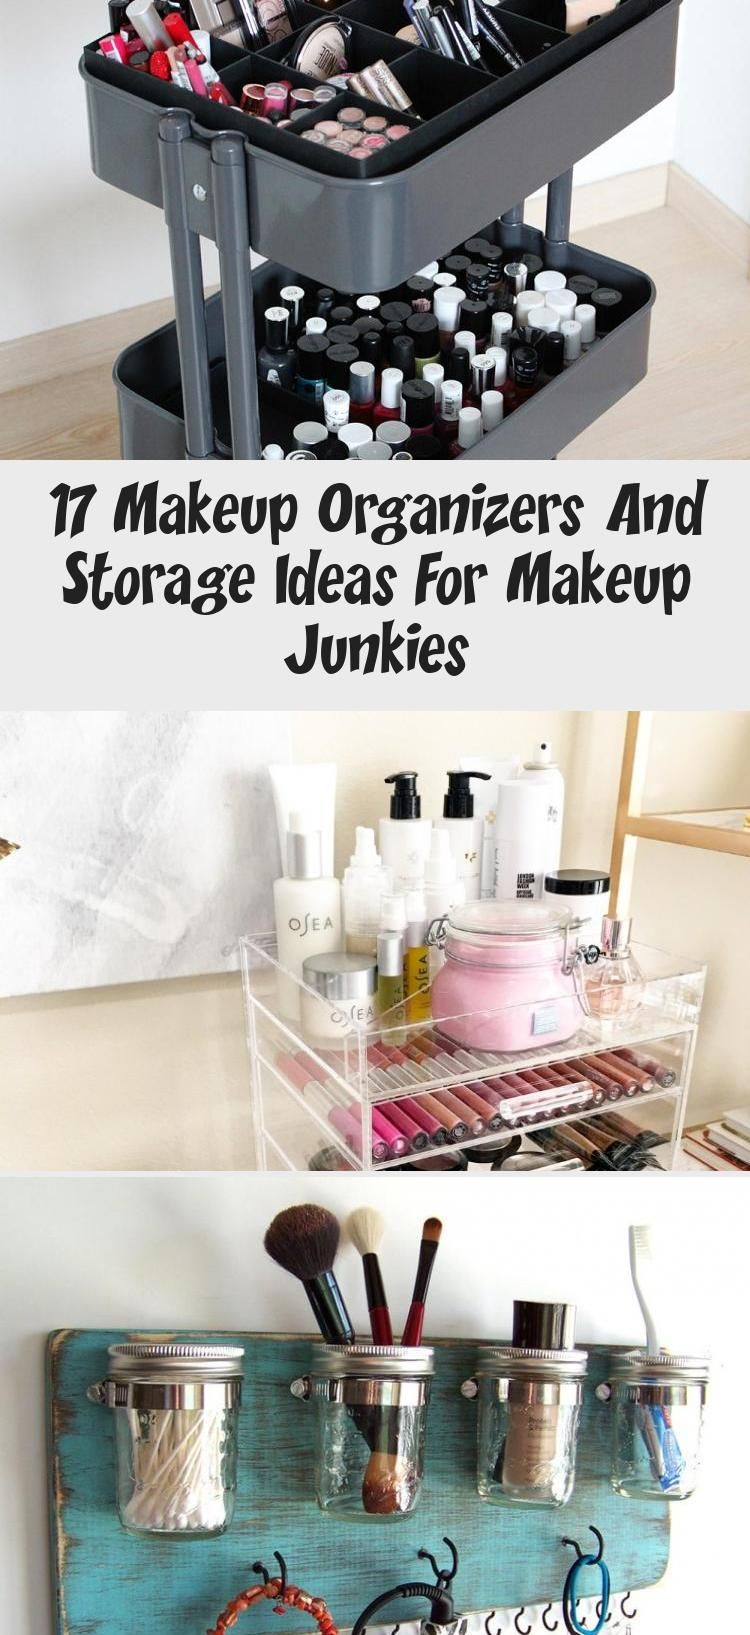 17 Makeup Organizers And Storage Ideas For Makeup Junkies